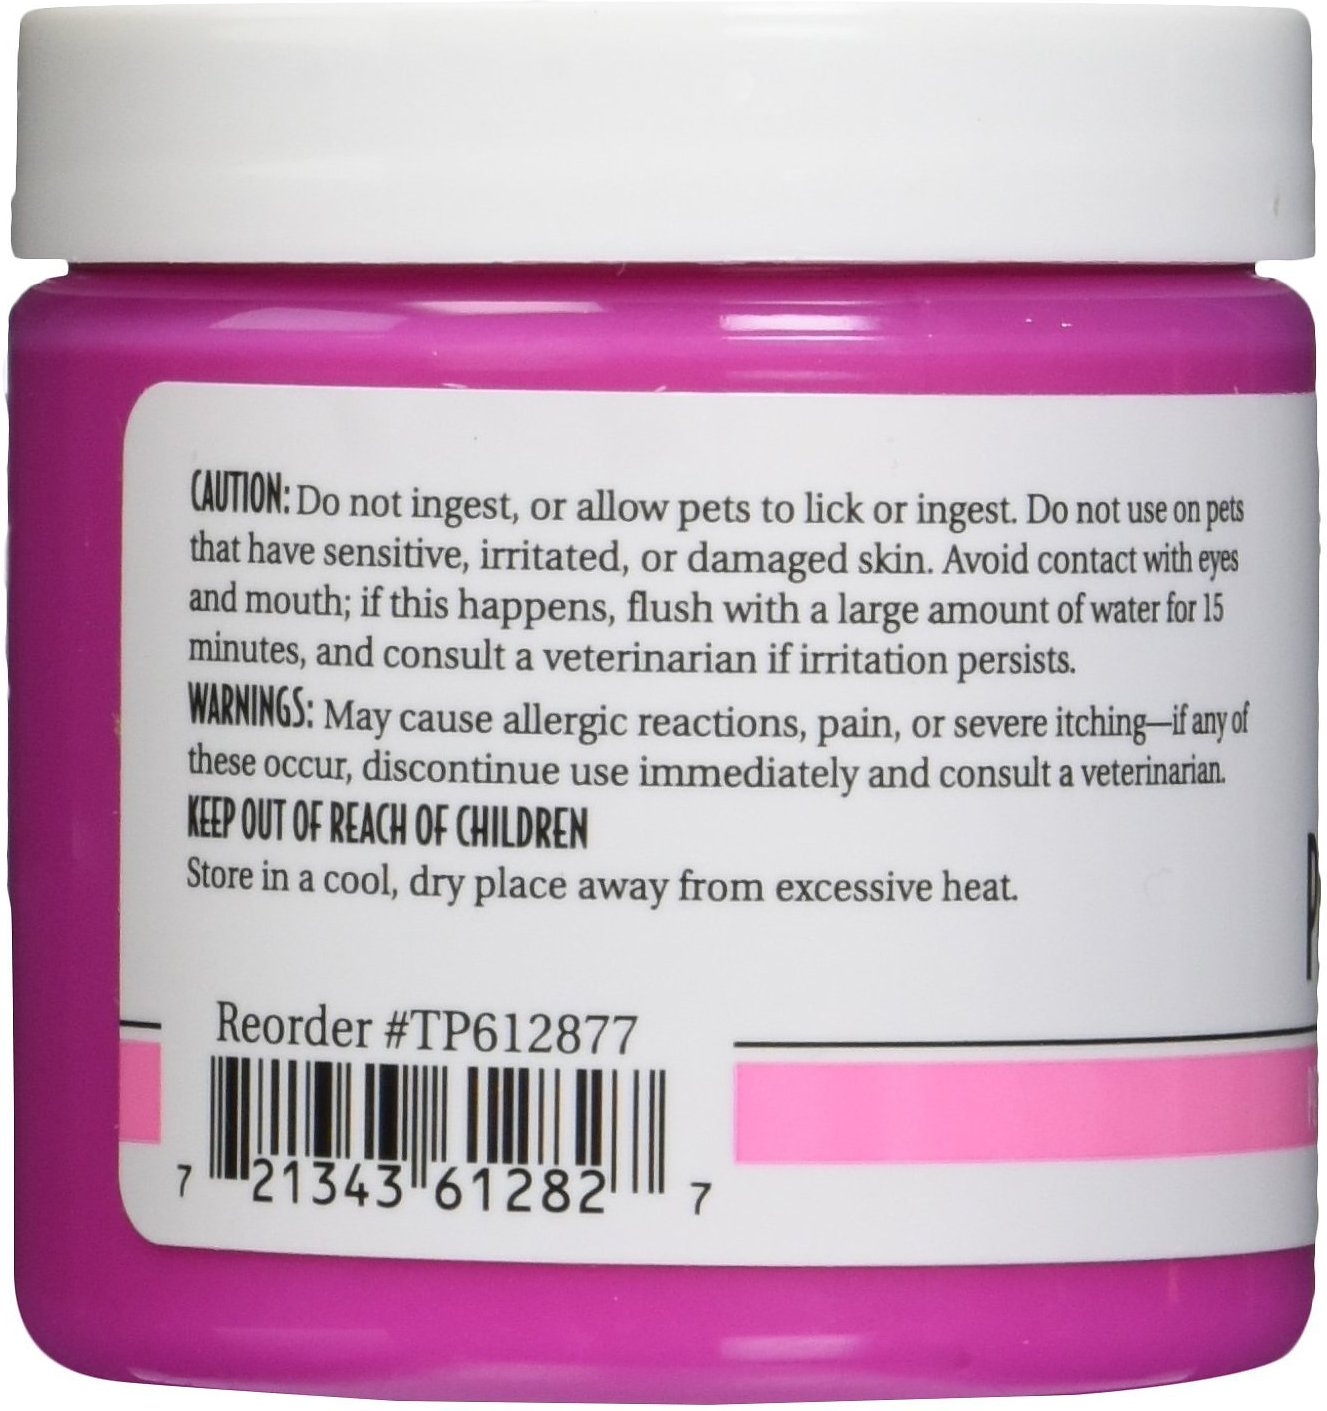 Top Performance Dog Dye Reviews